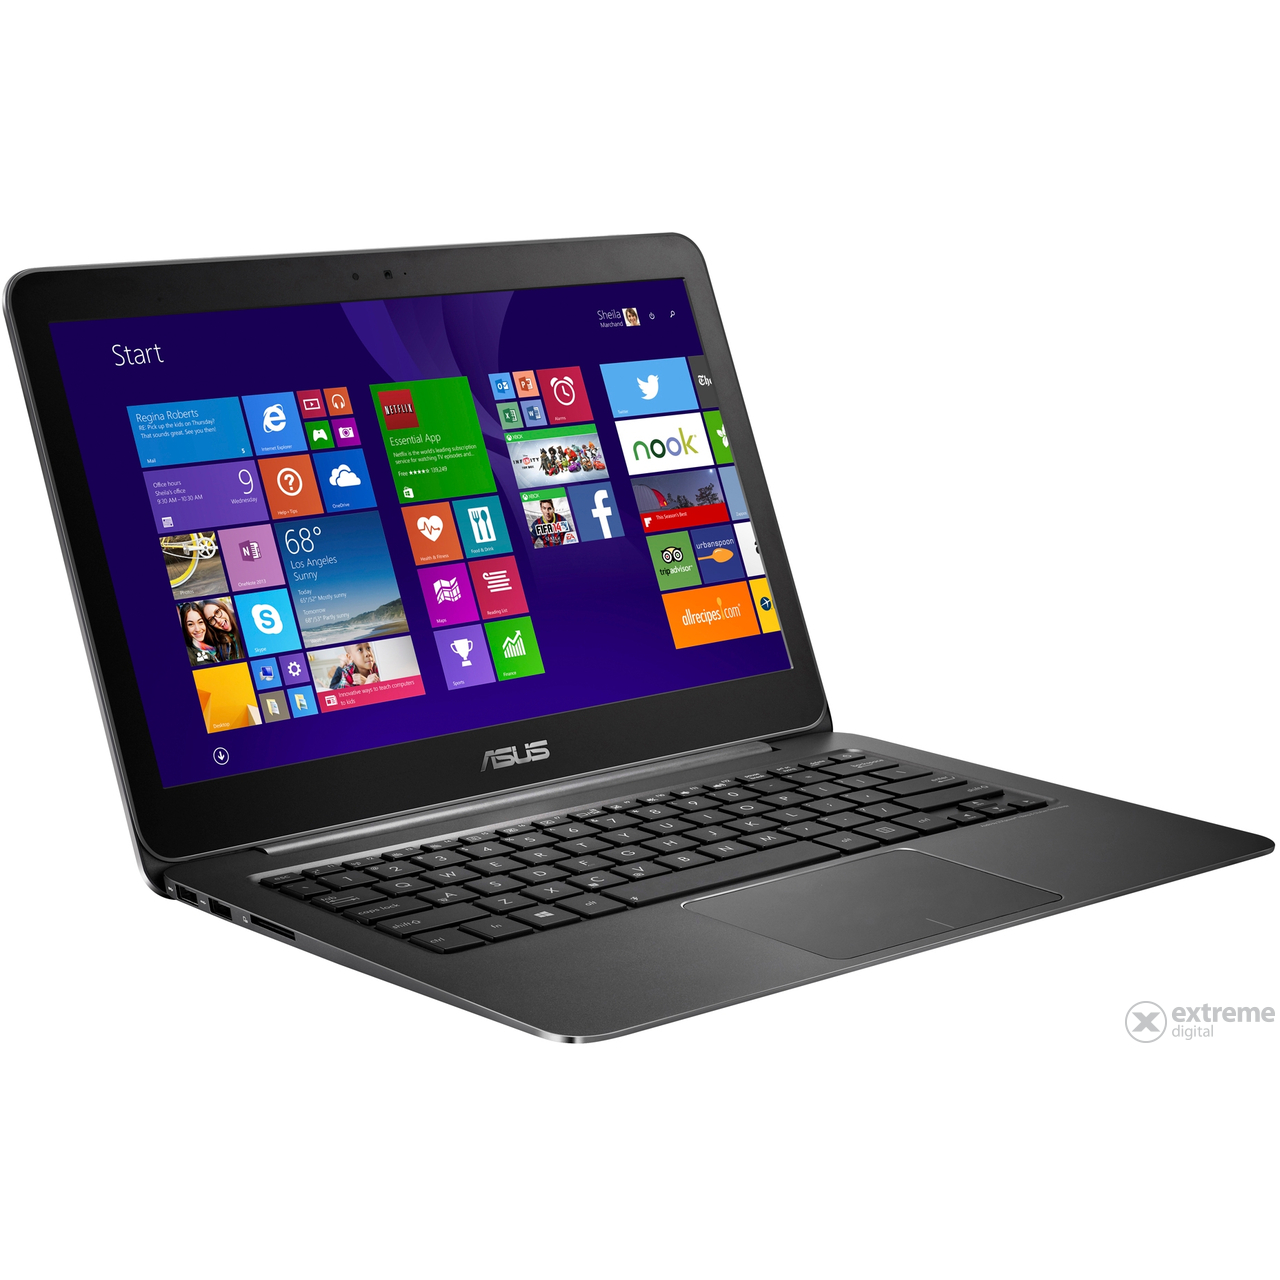 asus-zenbook-ux305la-fb019t-notebook-windows-10-fekete_012492e2.jpg